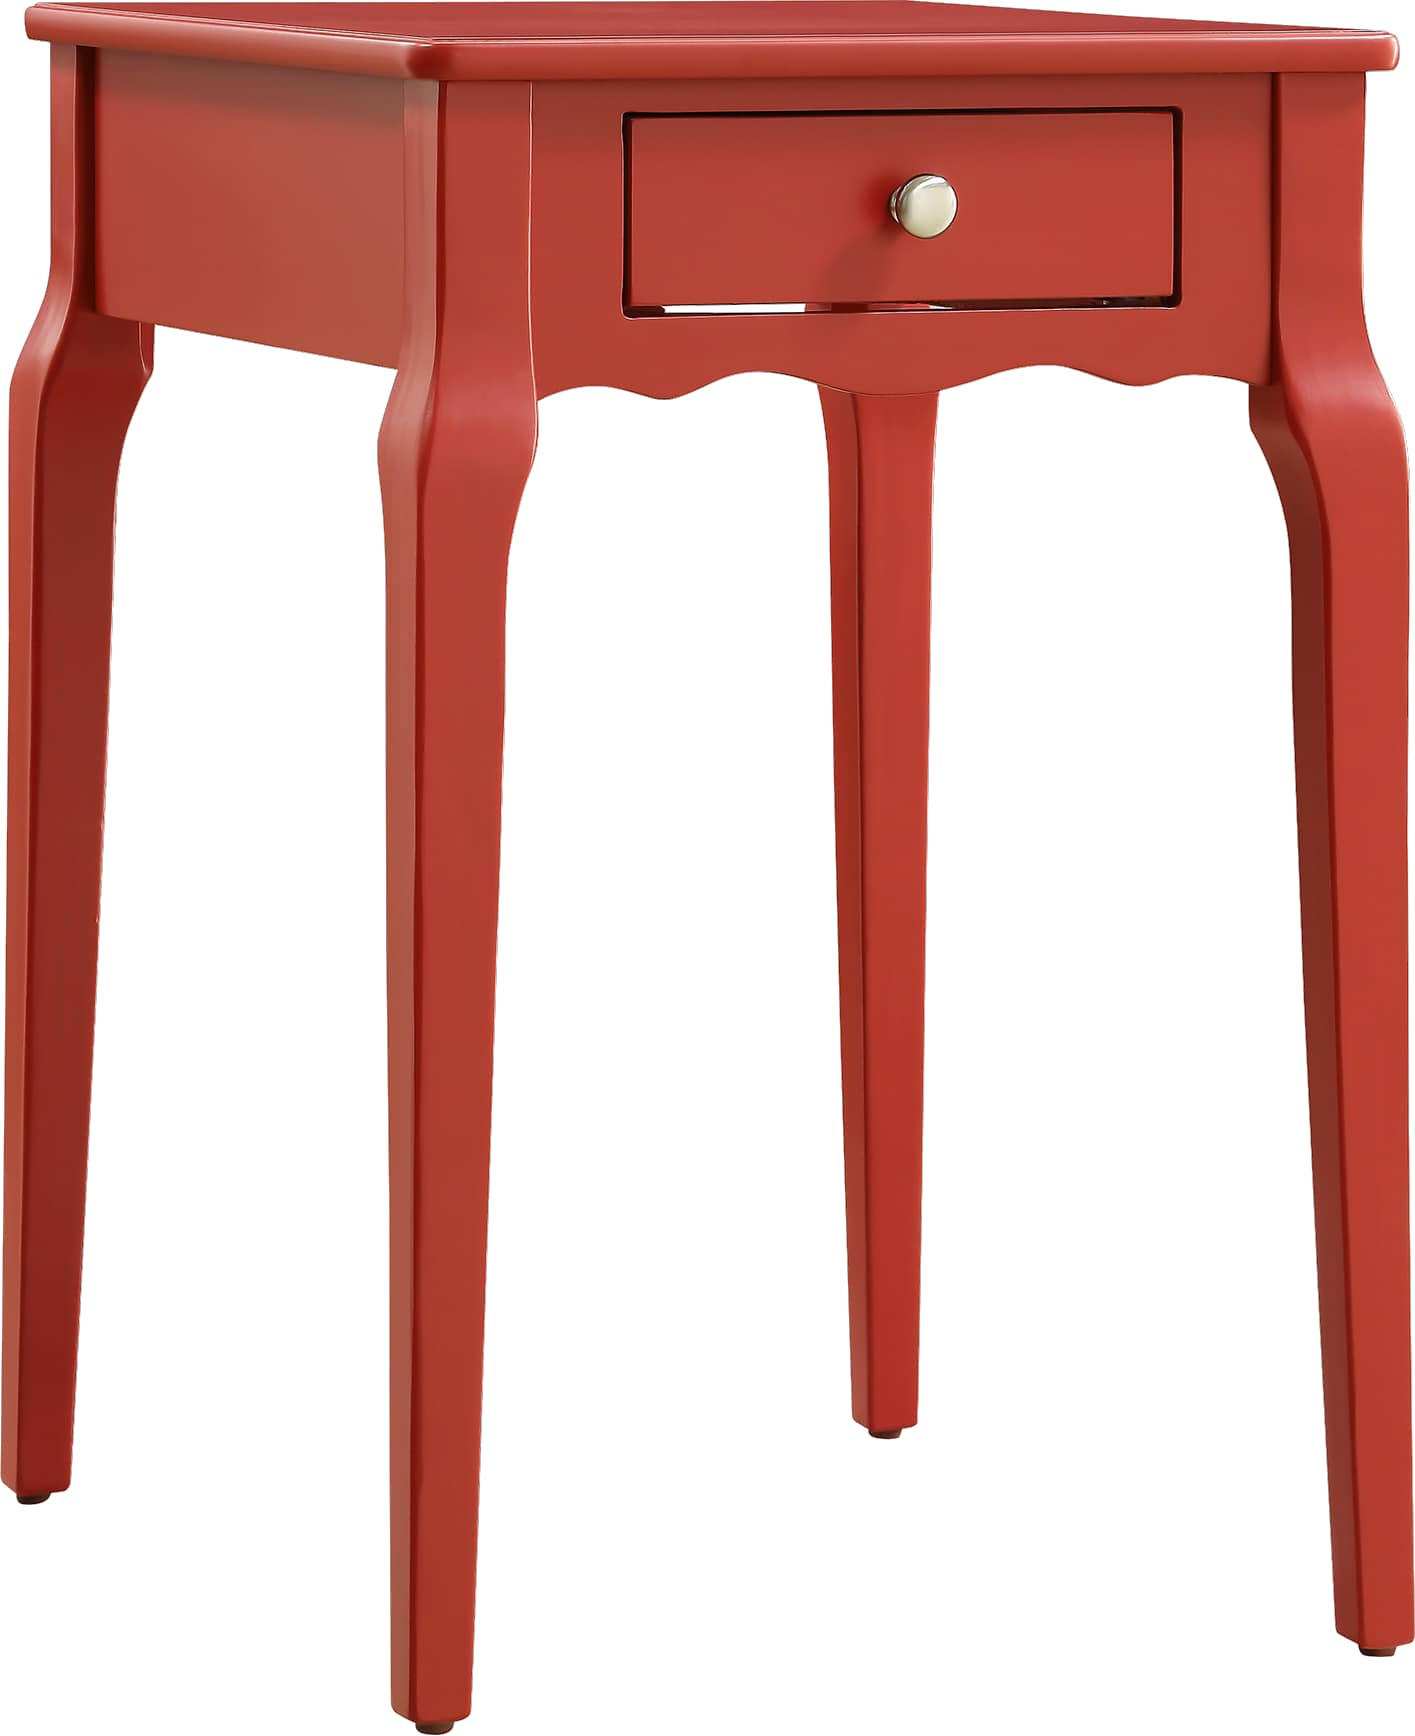 percel red accent table tables colors wood inexpensive kitchen sets white rectangle coffee thai rain drum side with shelves lateral file cabinet battery operated bedroom lights